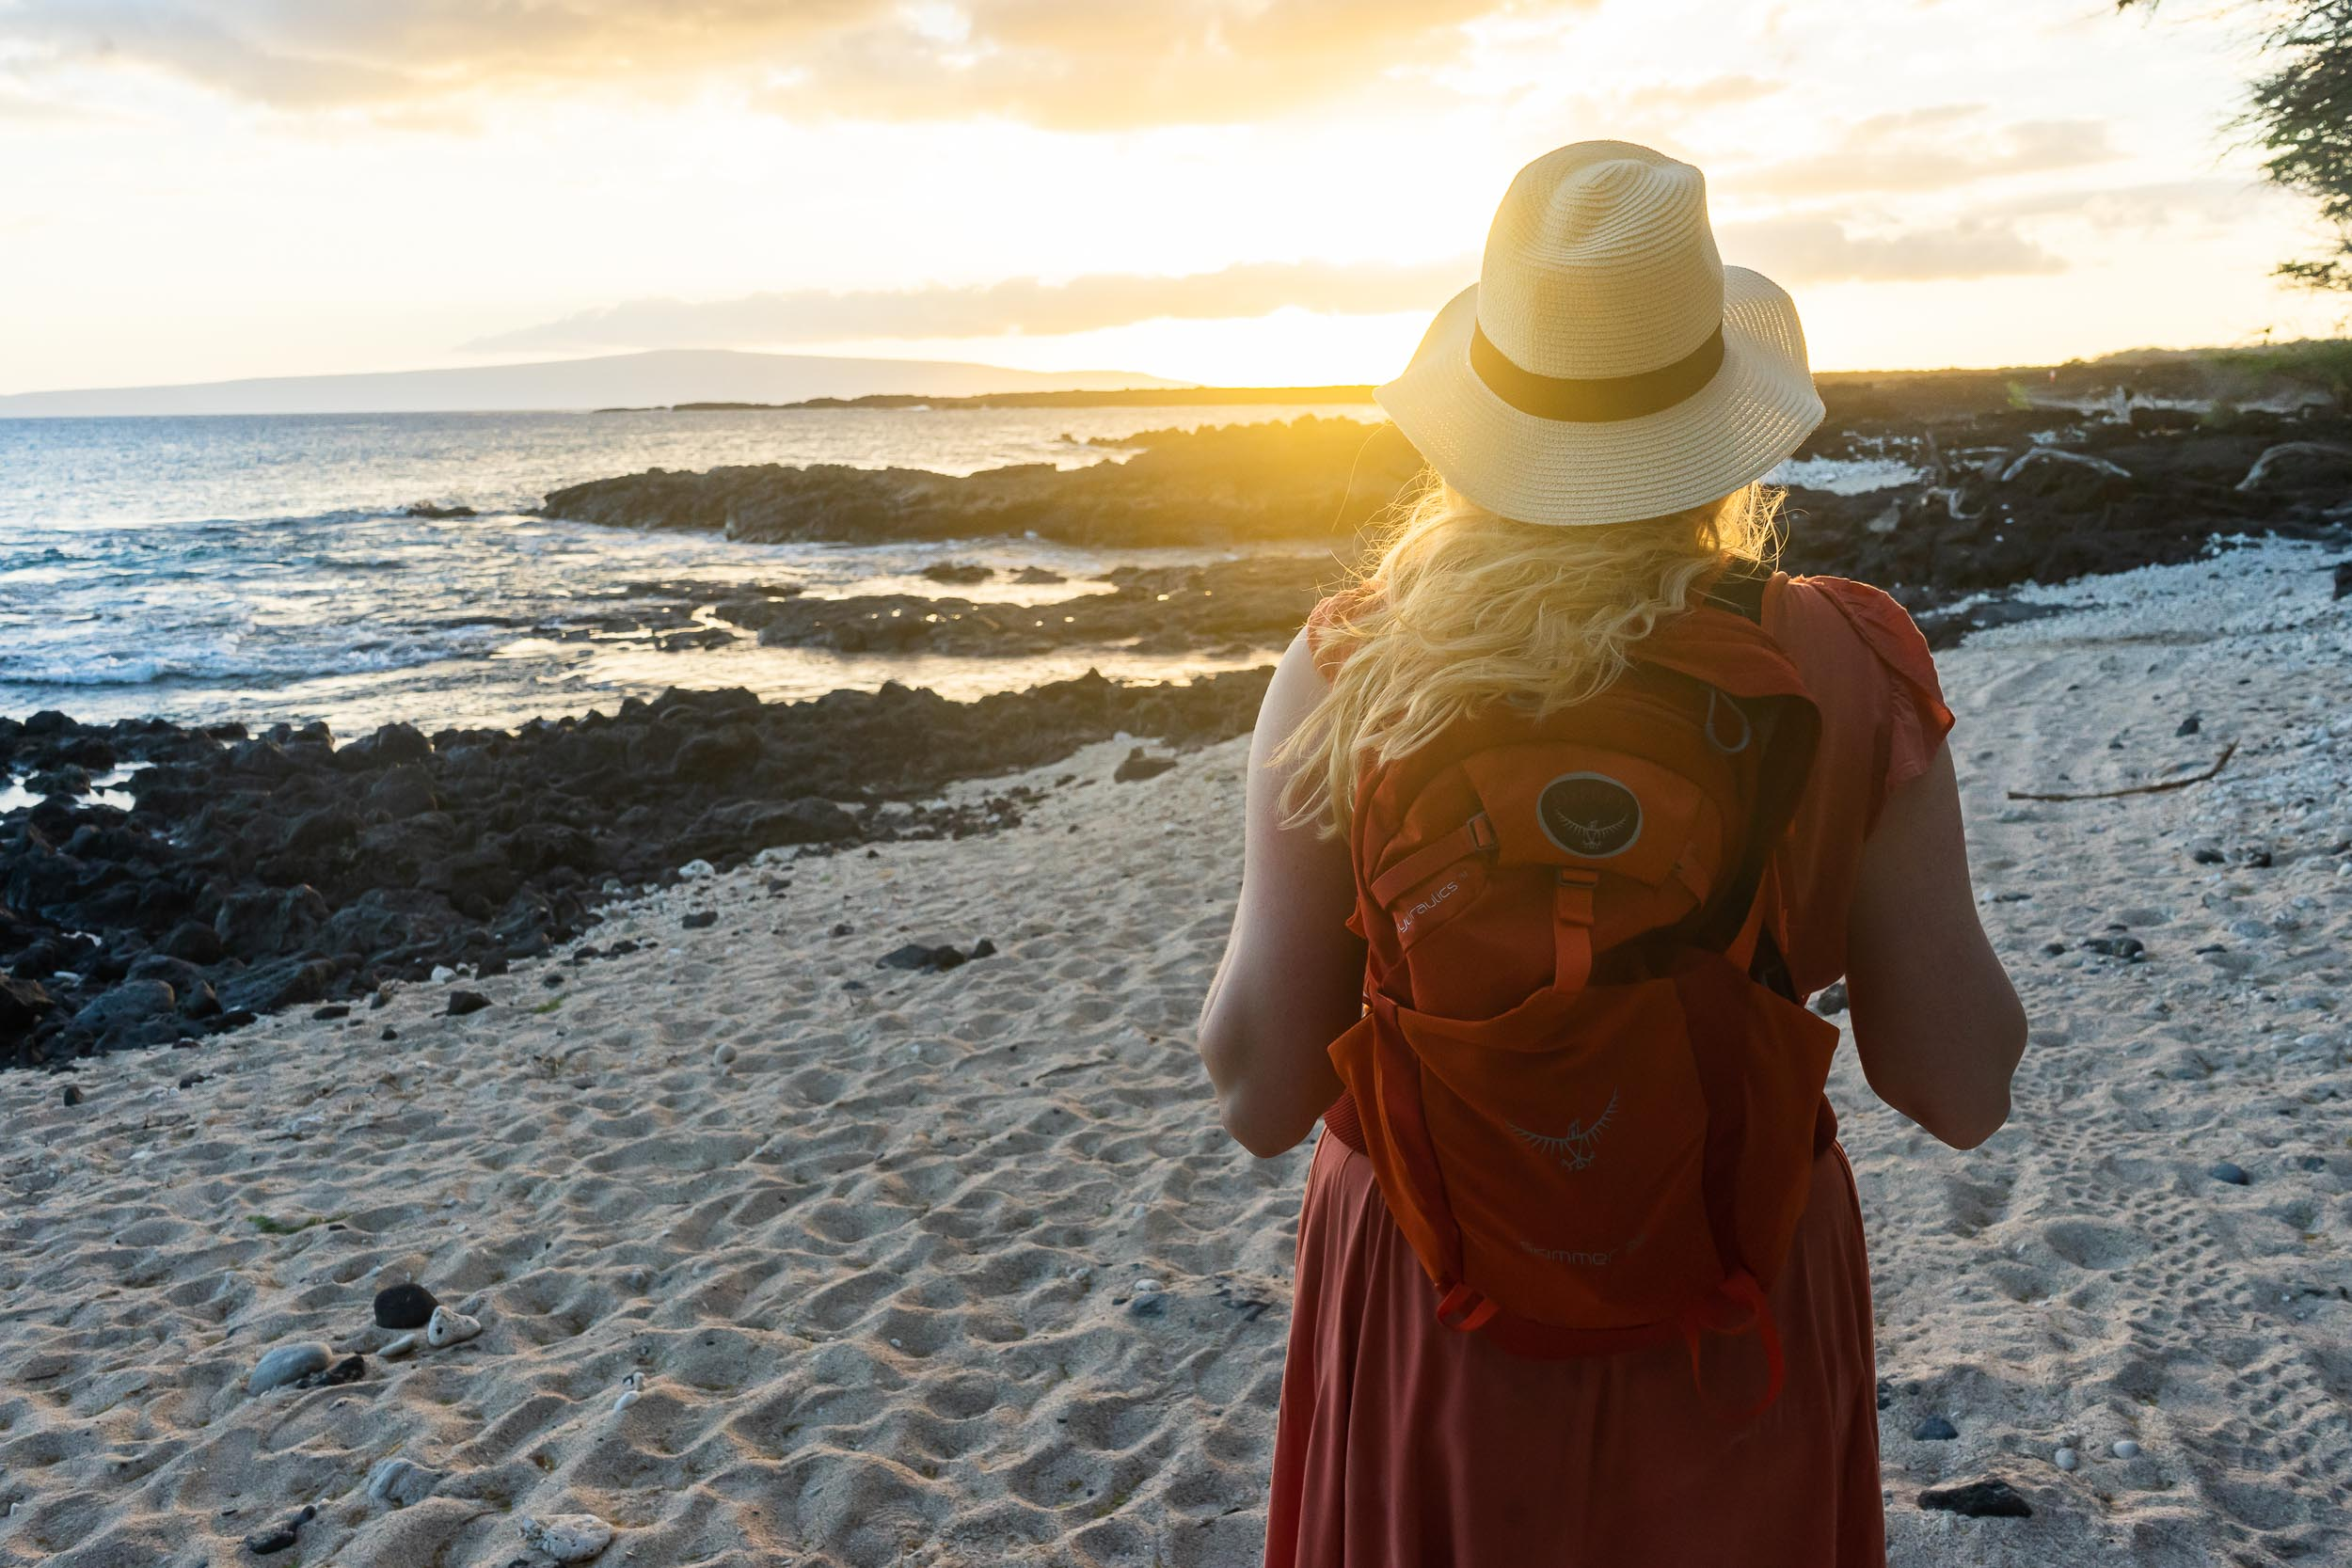 Epic off the beaten path hikes in Maui, Hawaii. Tips, tricks, and things to do in Maui, Hawaii. The ultimate travel guide along with rare, locals only secrets